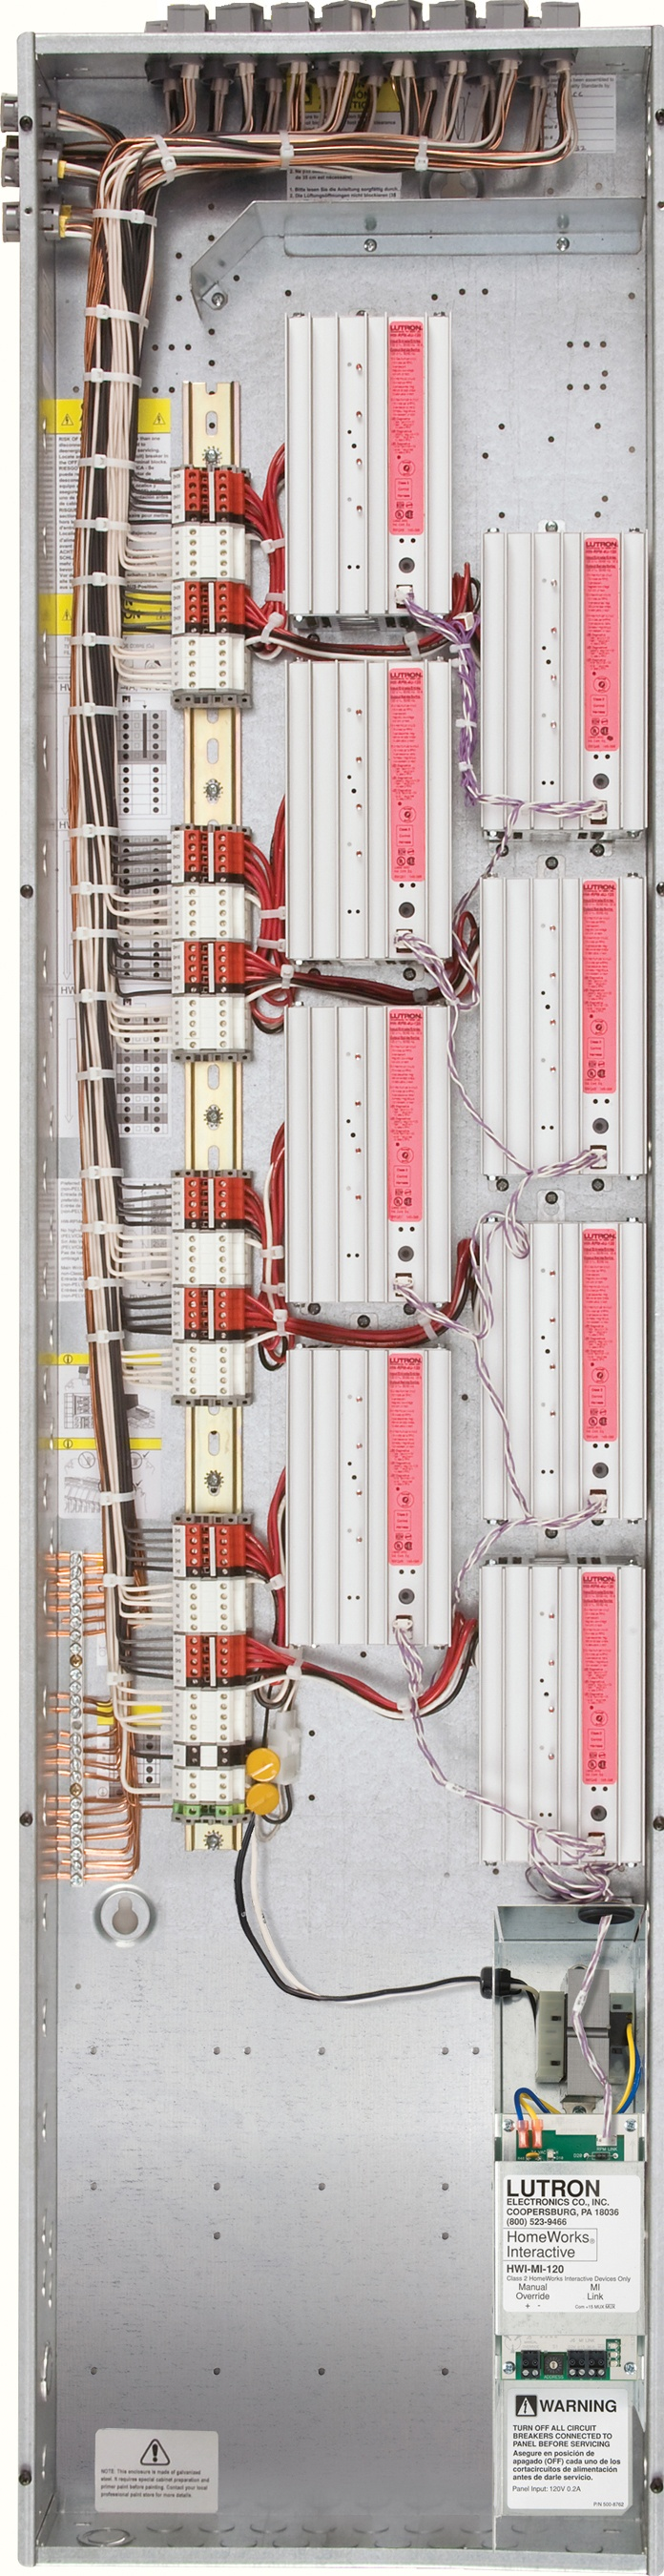 Lutron Lighting Wiring Diagram Great Design Of Ntf 10 Homeworks Hard Wired Control Panel This Dimmer Switch Maestro